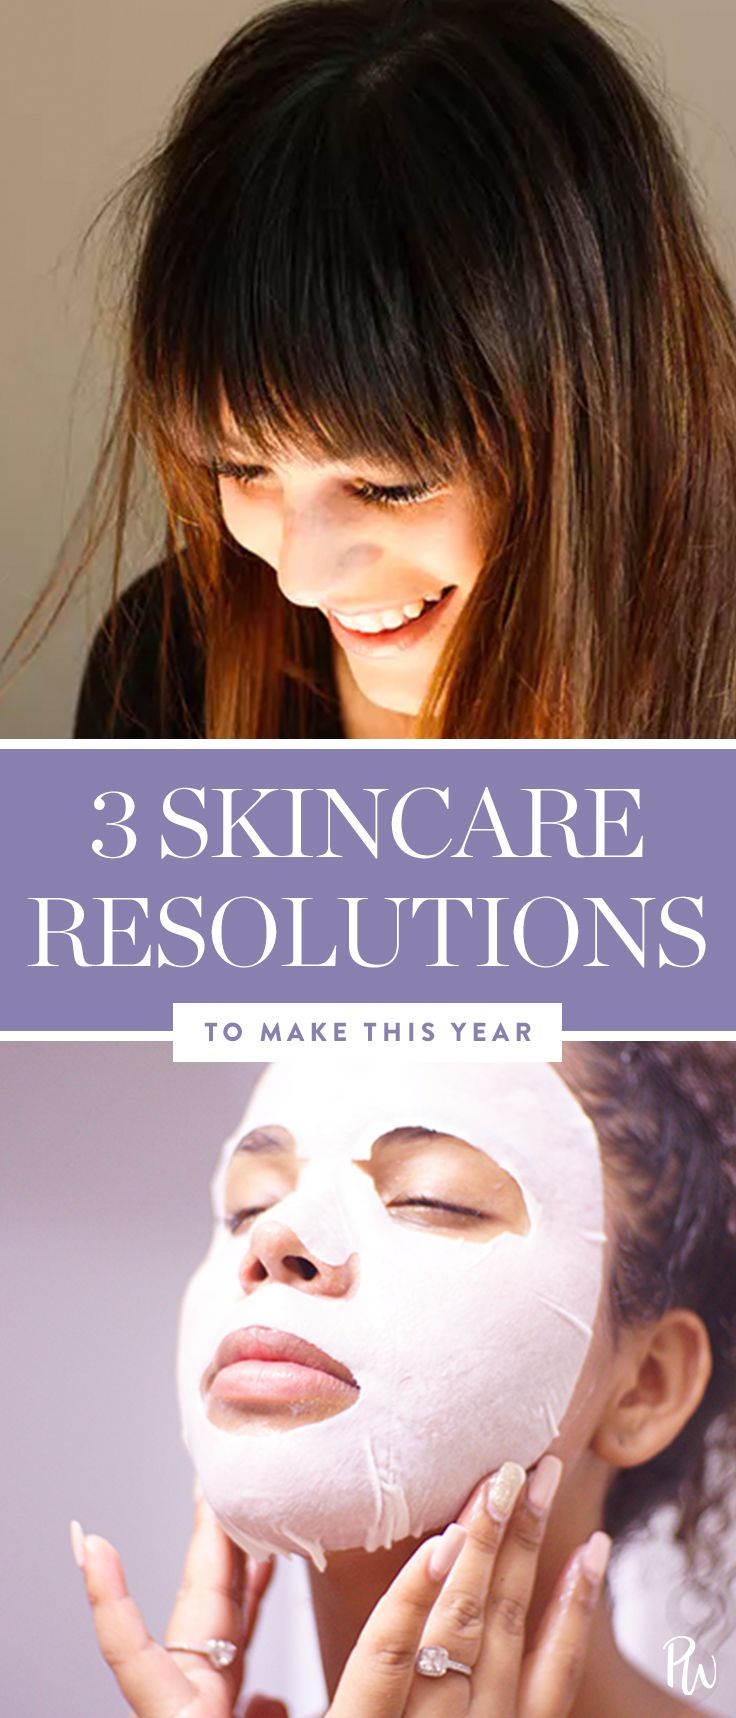 Look - 3 Resolutions Beauty for the New Year video